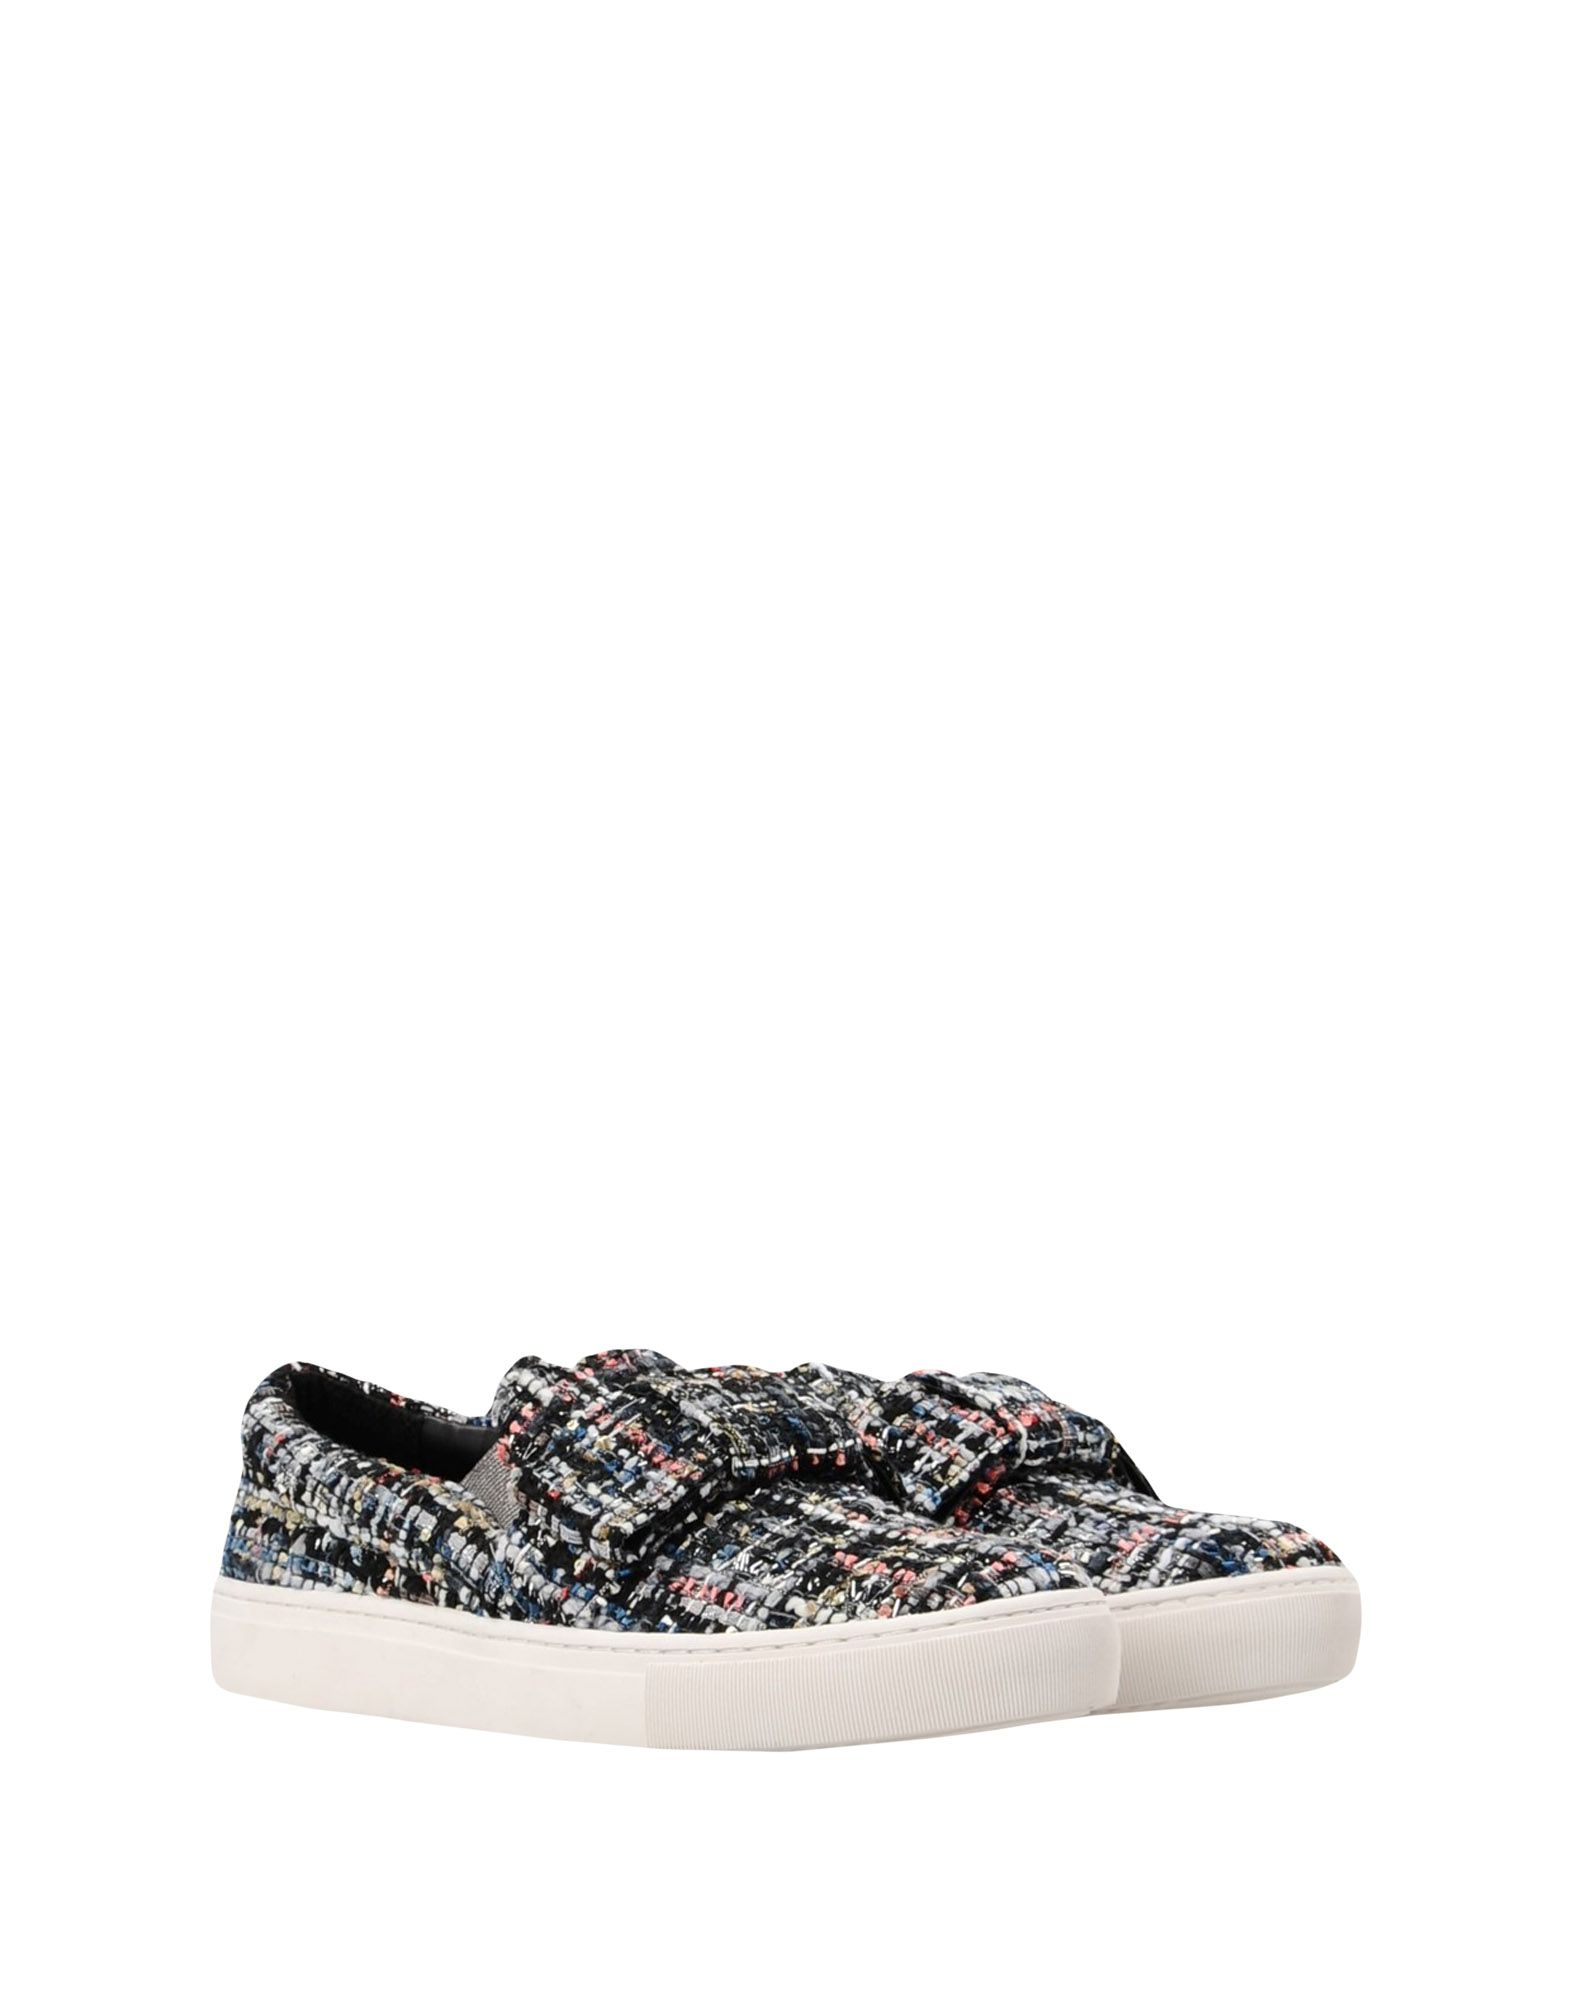 Karl Lagerfeld Kupsole Bow Slip On - - - Sneakers - Women Karl Lagerfeld Sneakers online on  Canada - 11423797PP 73599f